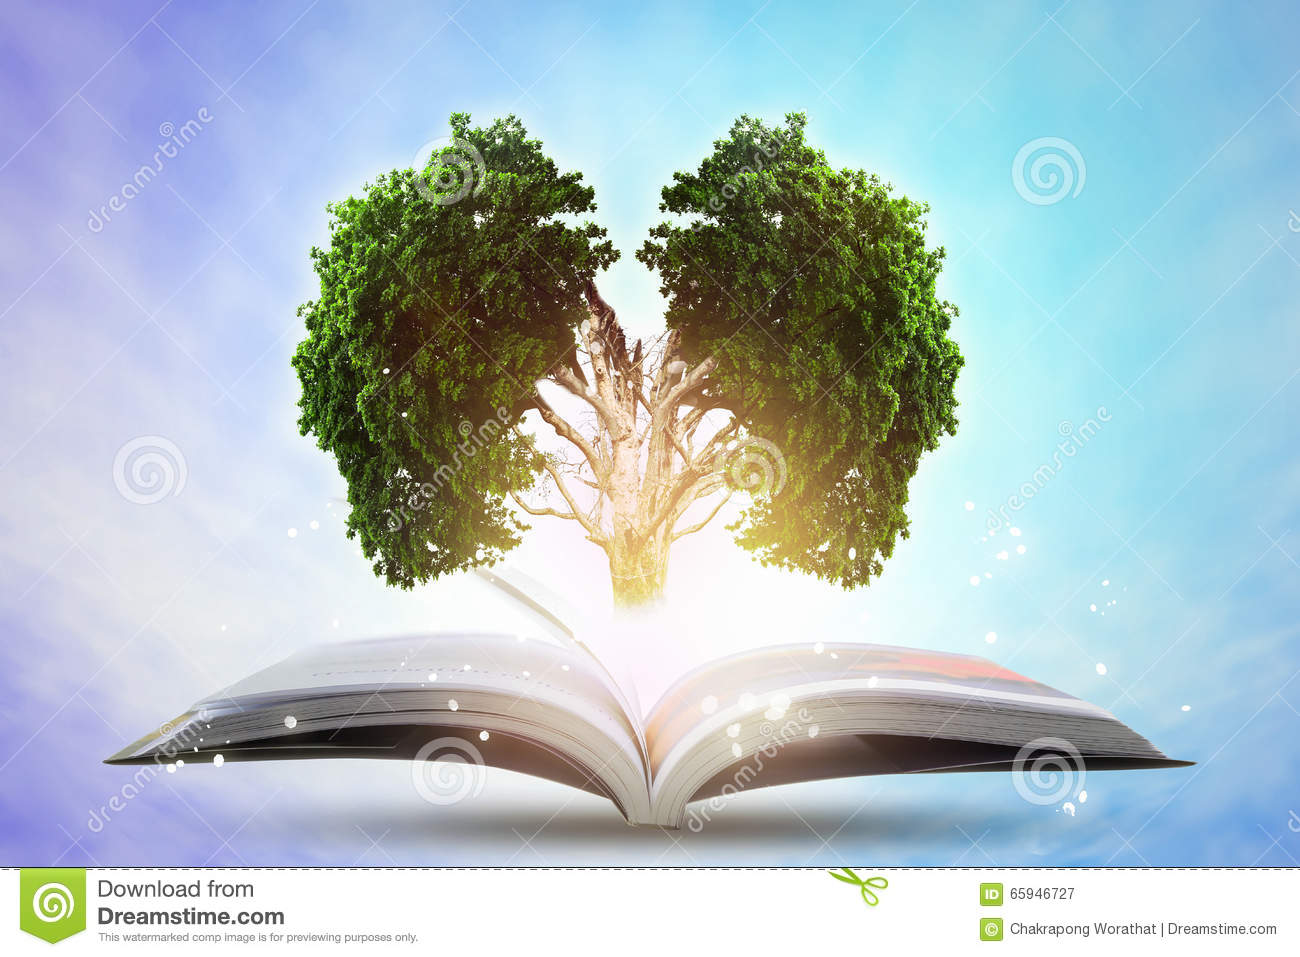 Book of growing knowledge with brains big tree.